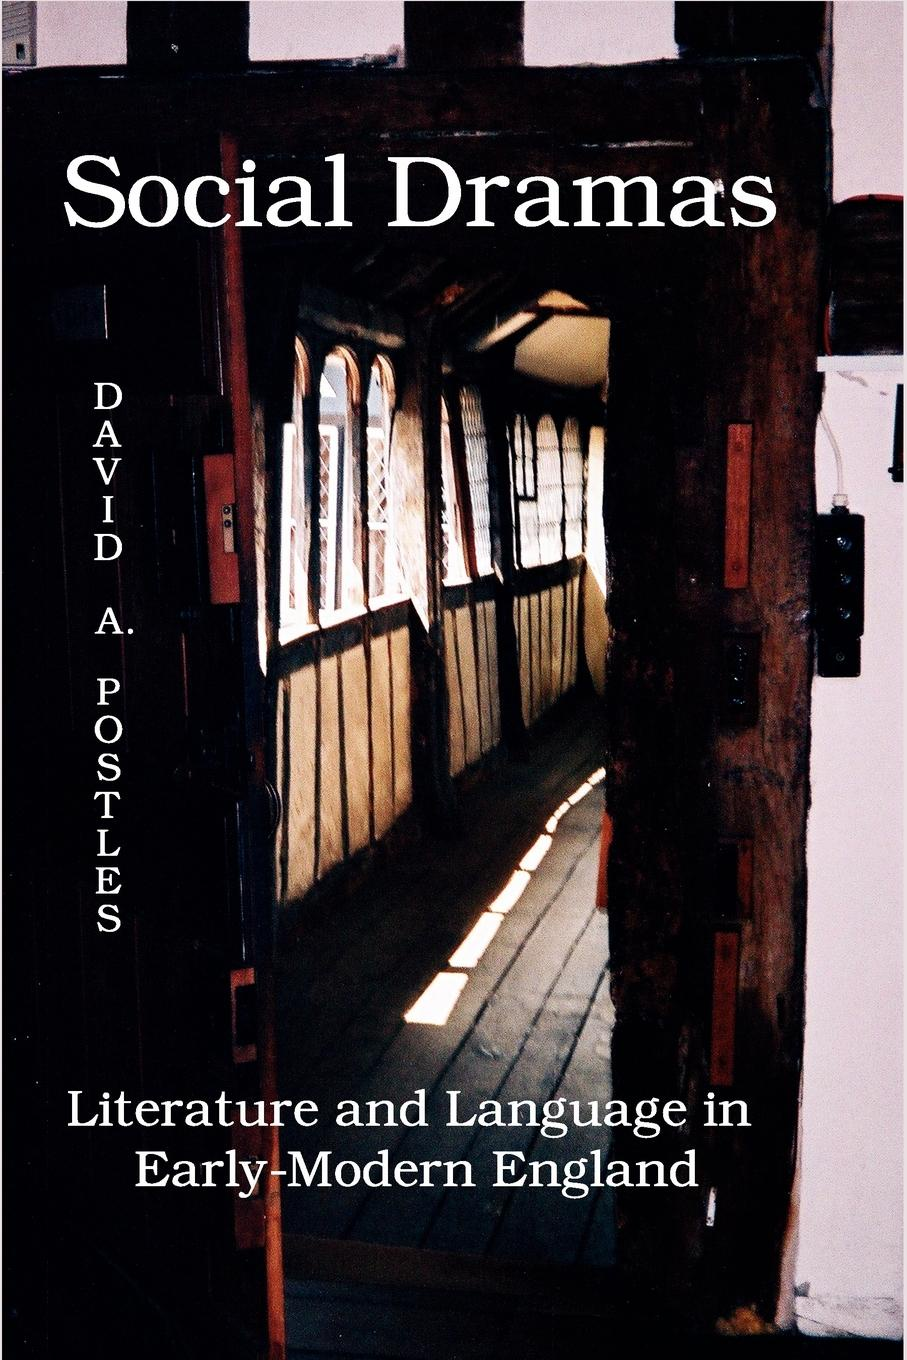 цена на David A. Postles Social Dramas. Literature and Language in Early-Modern England.